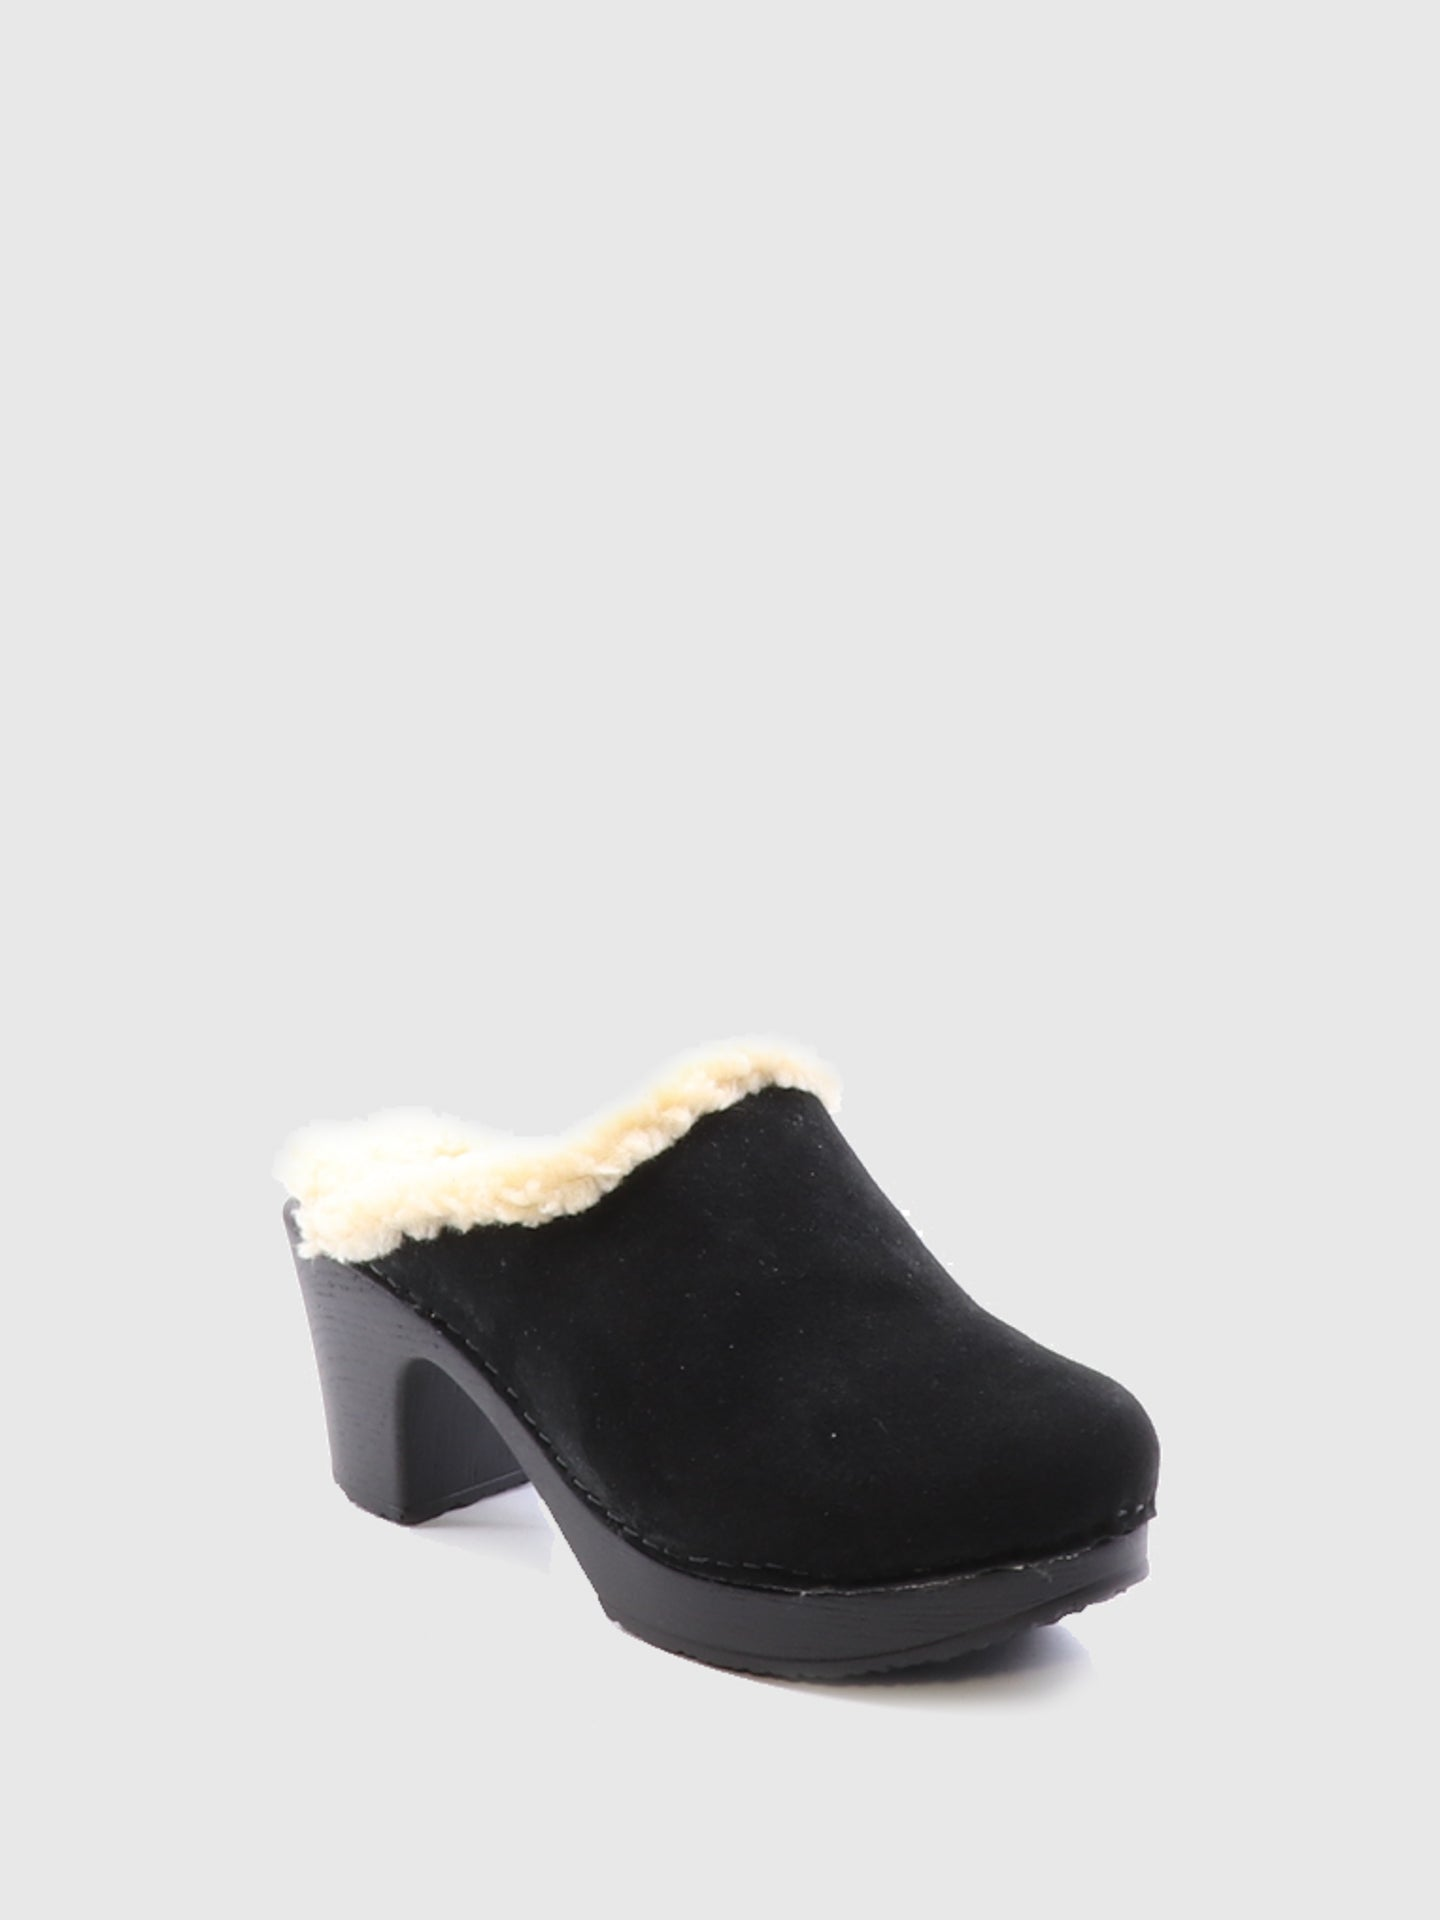 Bos&Co Black Round Toe Mules